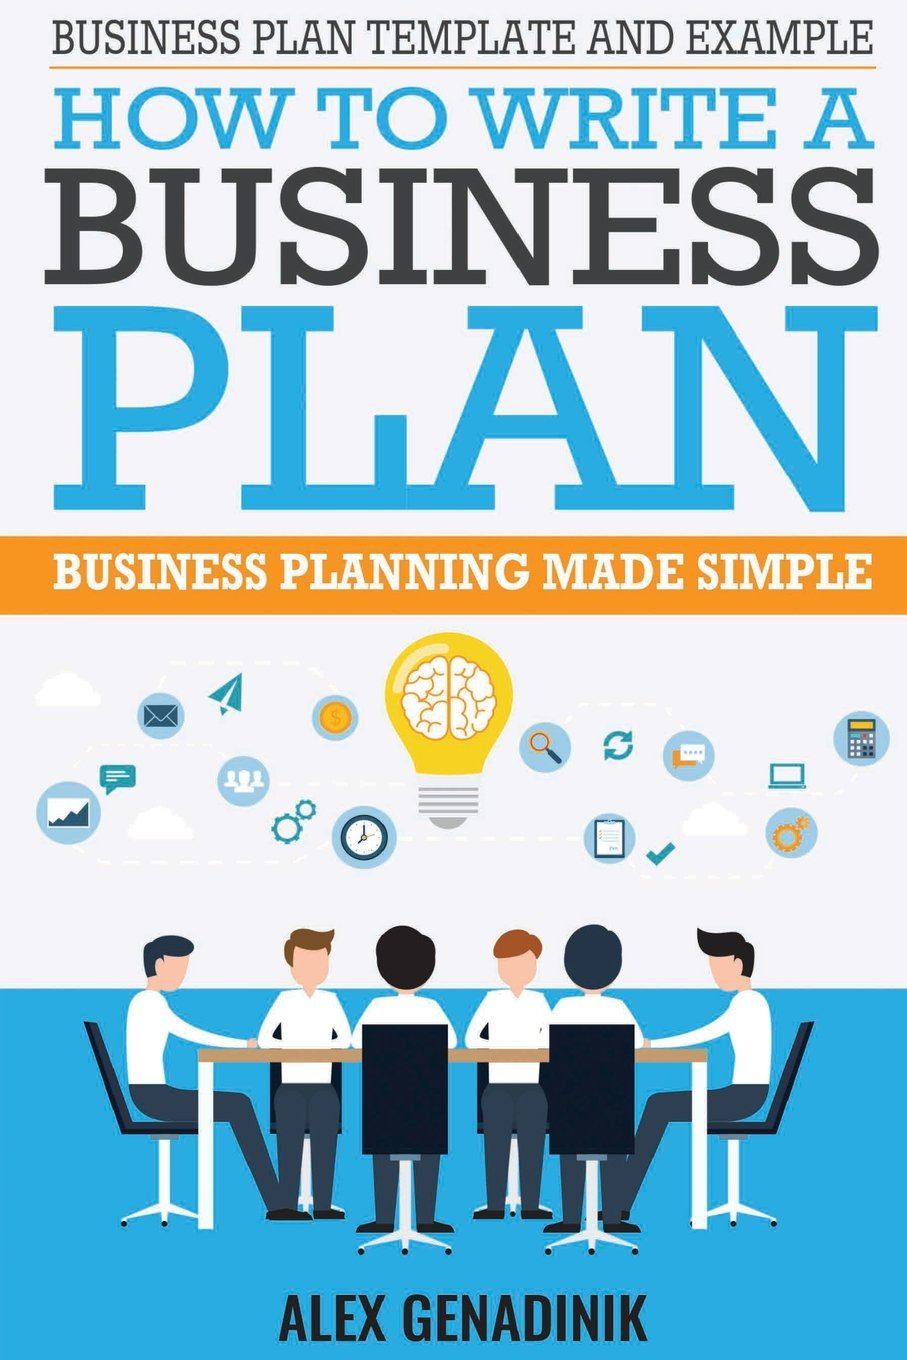 Business plan template and example how to write a business plan business plan template and example how to write a business plan business planning made simple alex genadinik 9781519741783 amazon books cheaphphosting Image collections